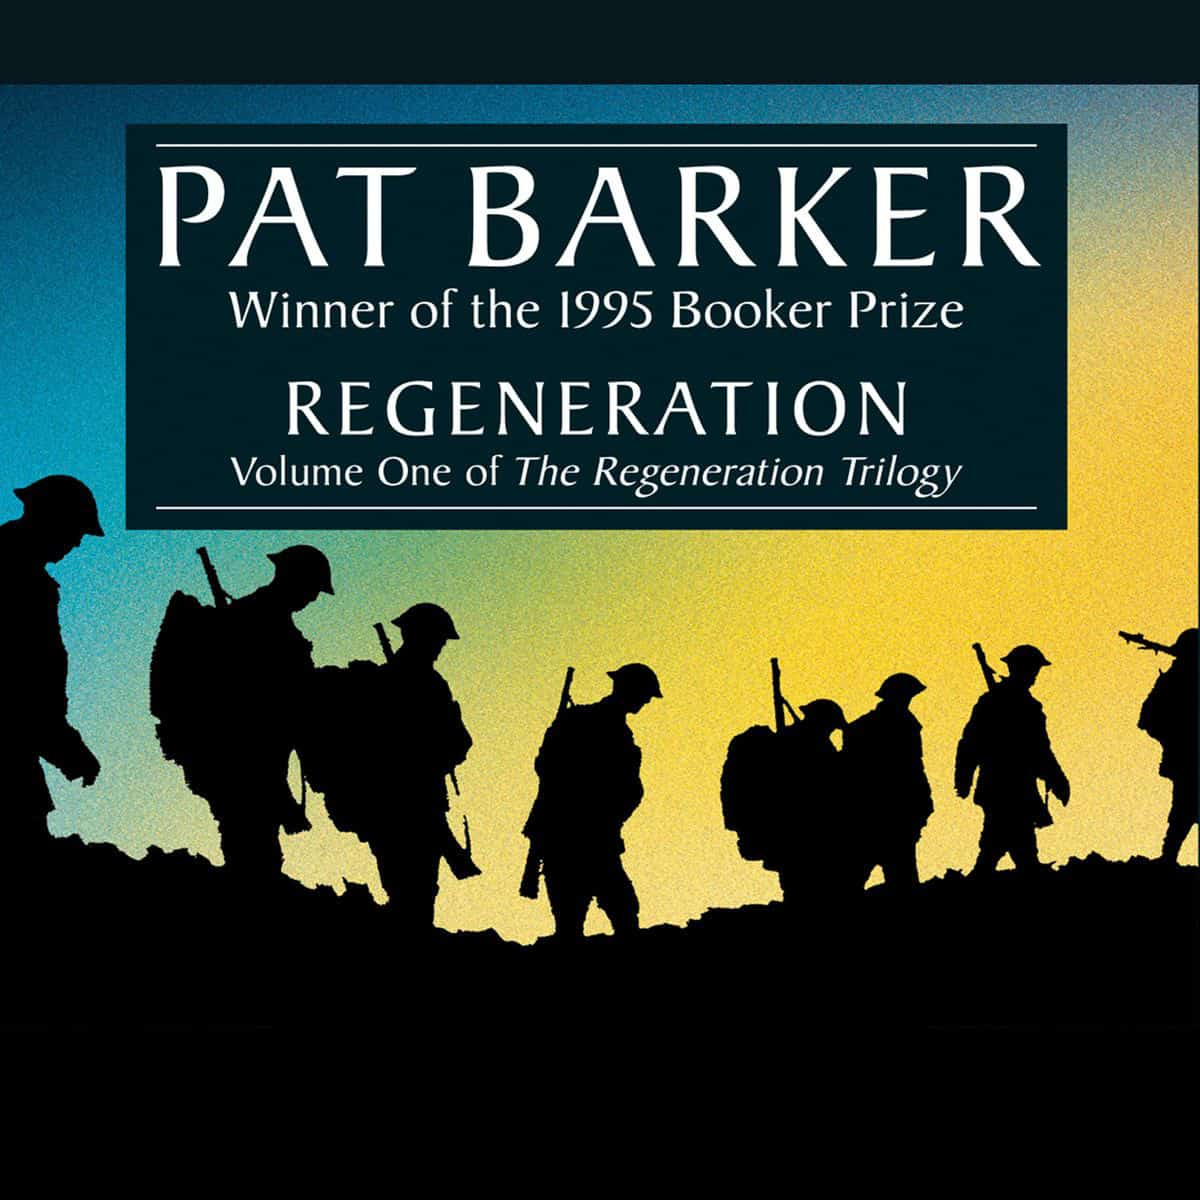 The plot in Regeneration by Pat Barker photo